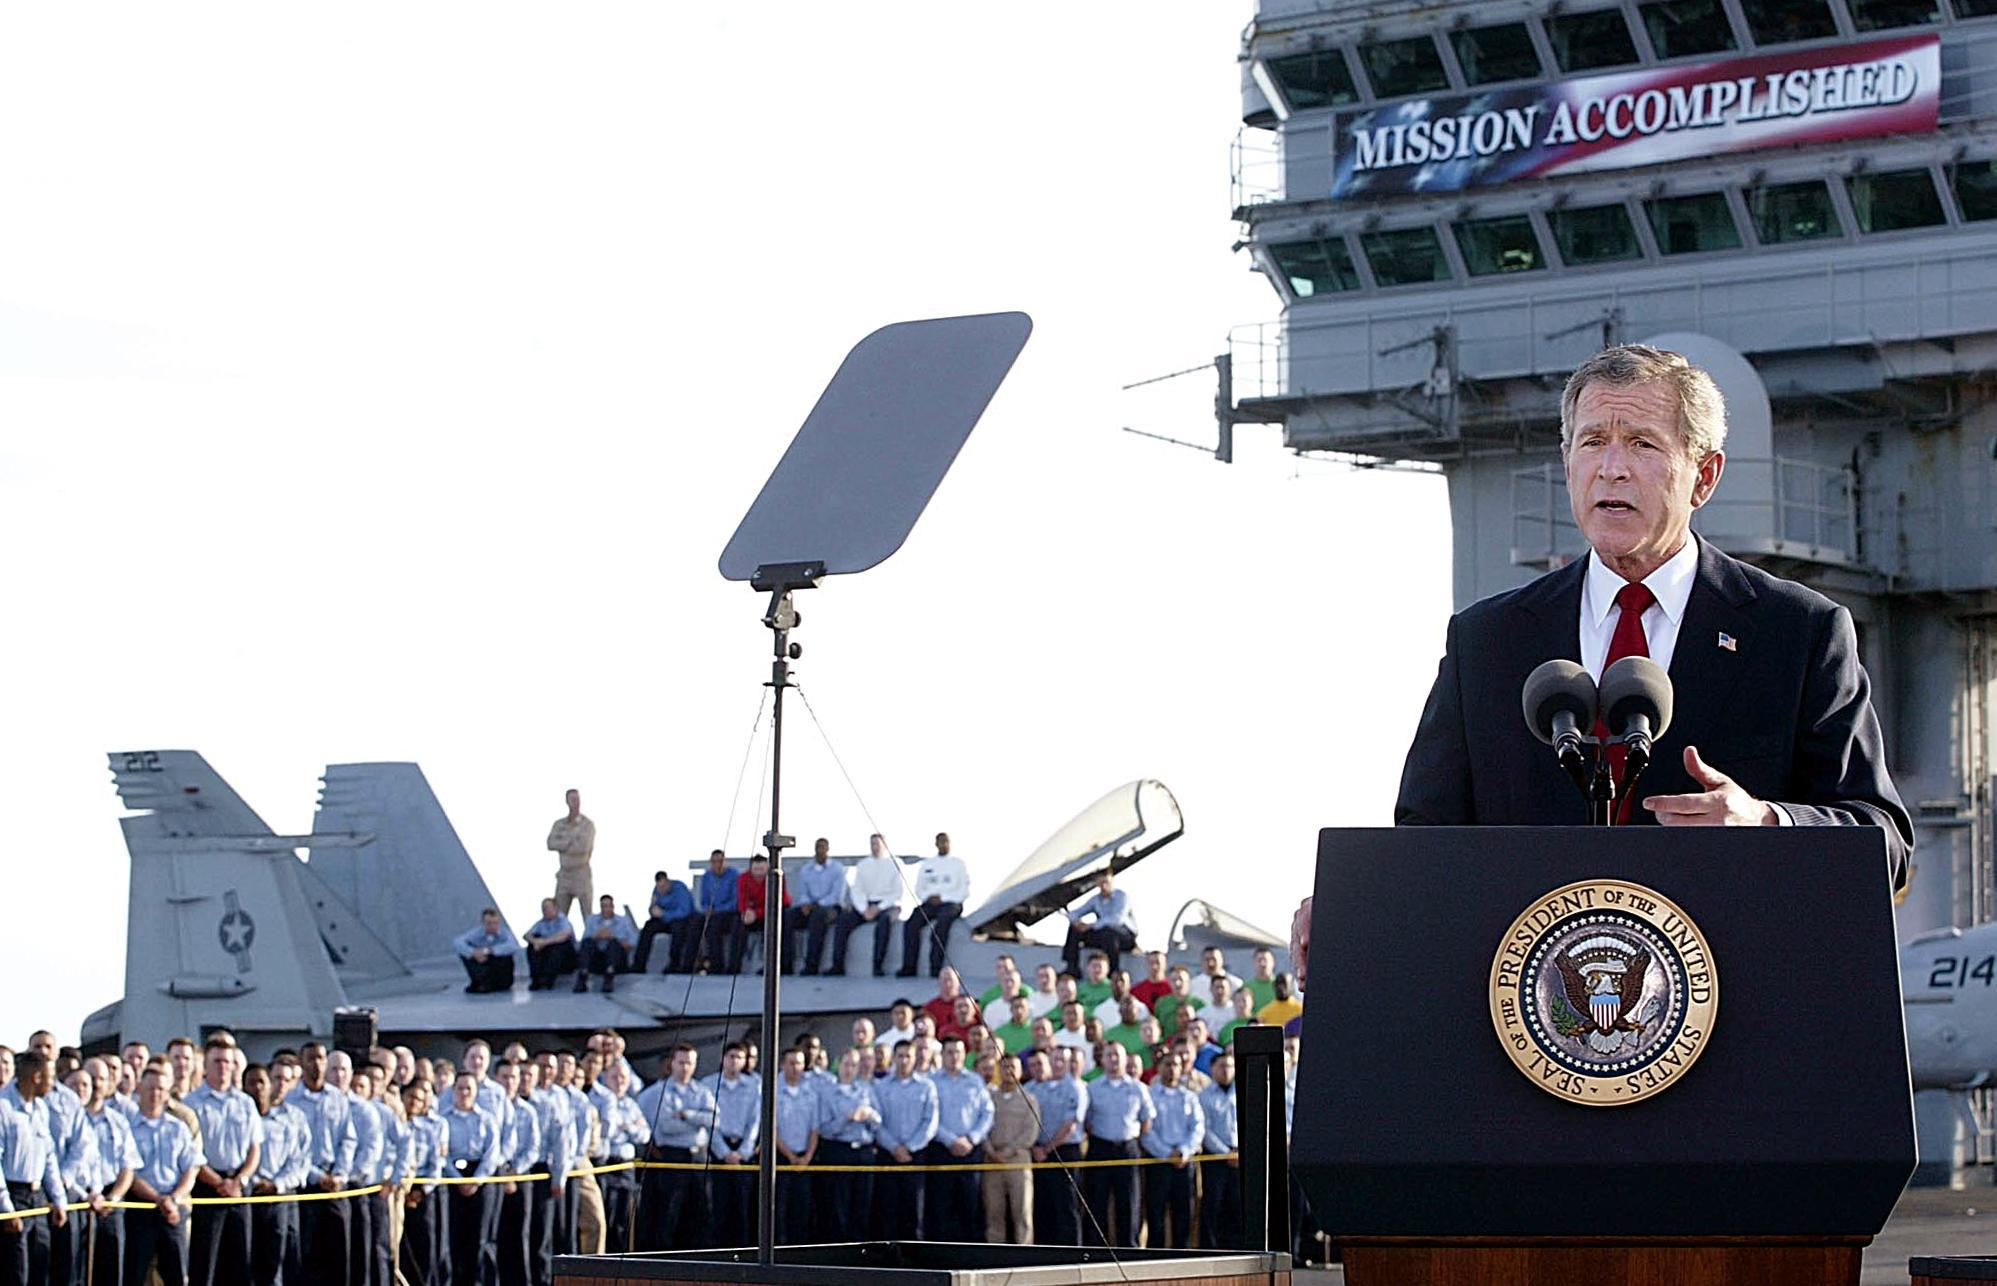 President George W. Bush addresses the nation aboard the nuclear aircraft carrier USS Abraham Lincoln on 1 May, 2003, as it sails for Naval Air Station North Island, San Diego, California.